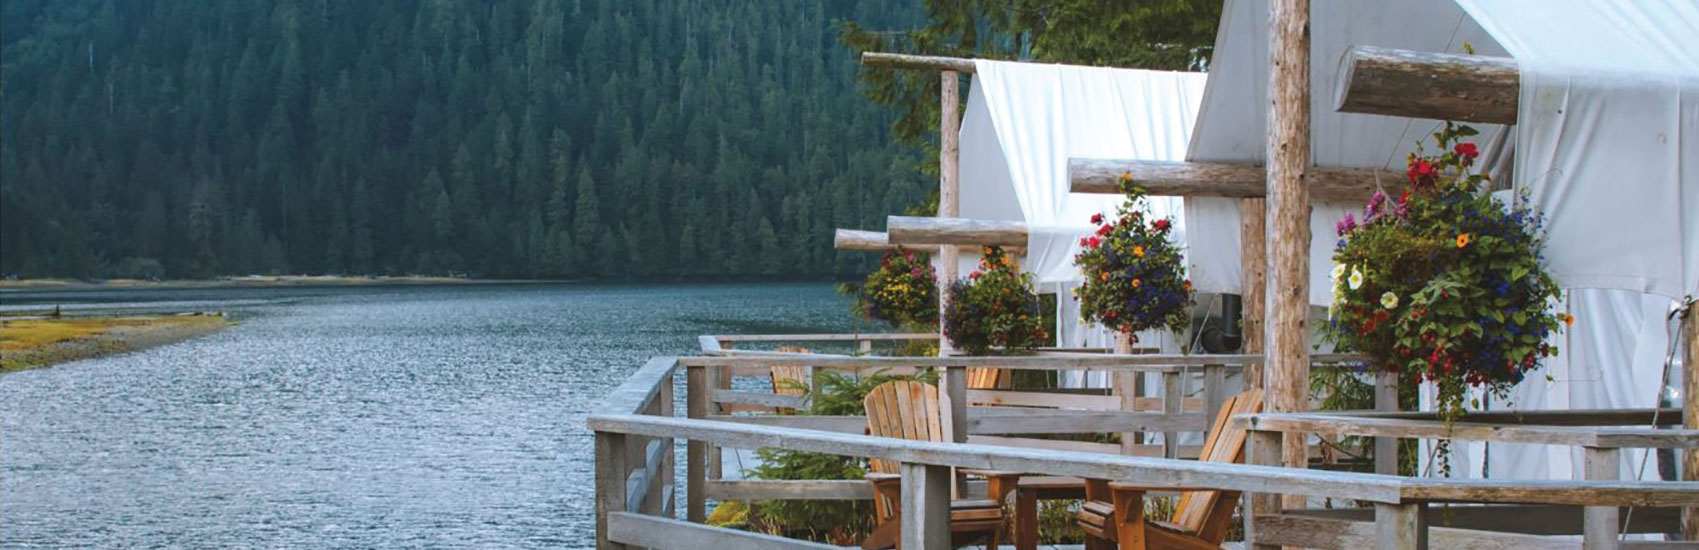 Clayoquot Wilderness Resort 0